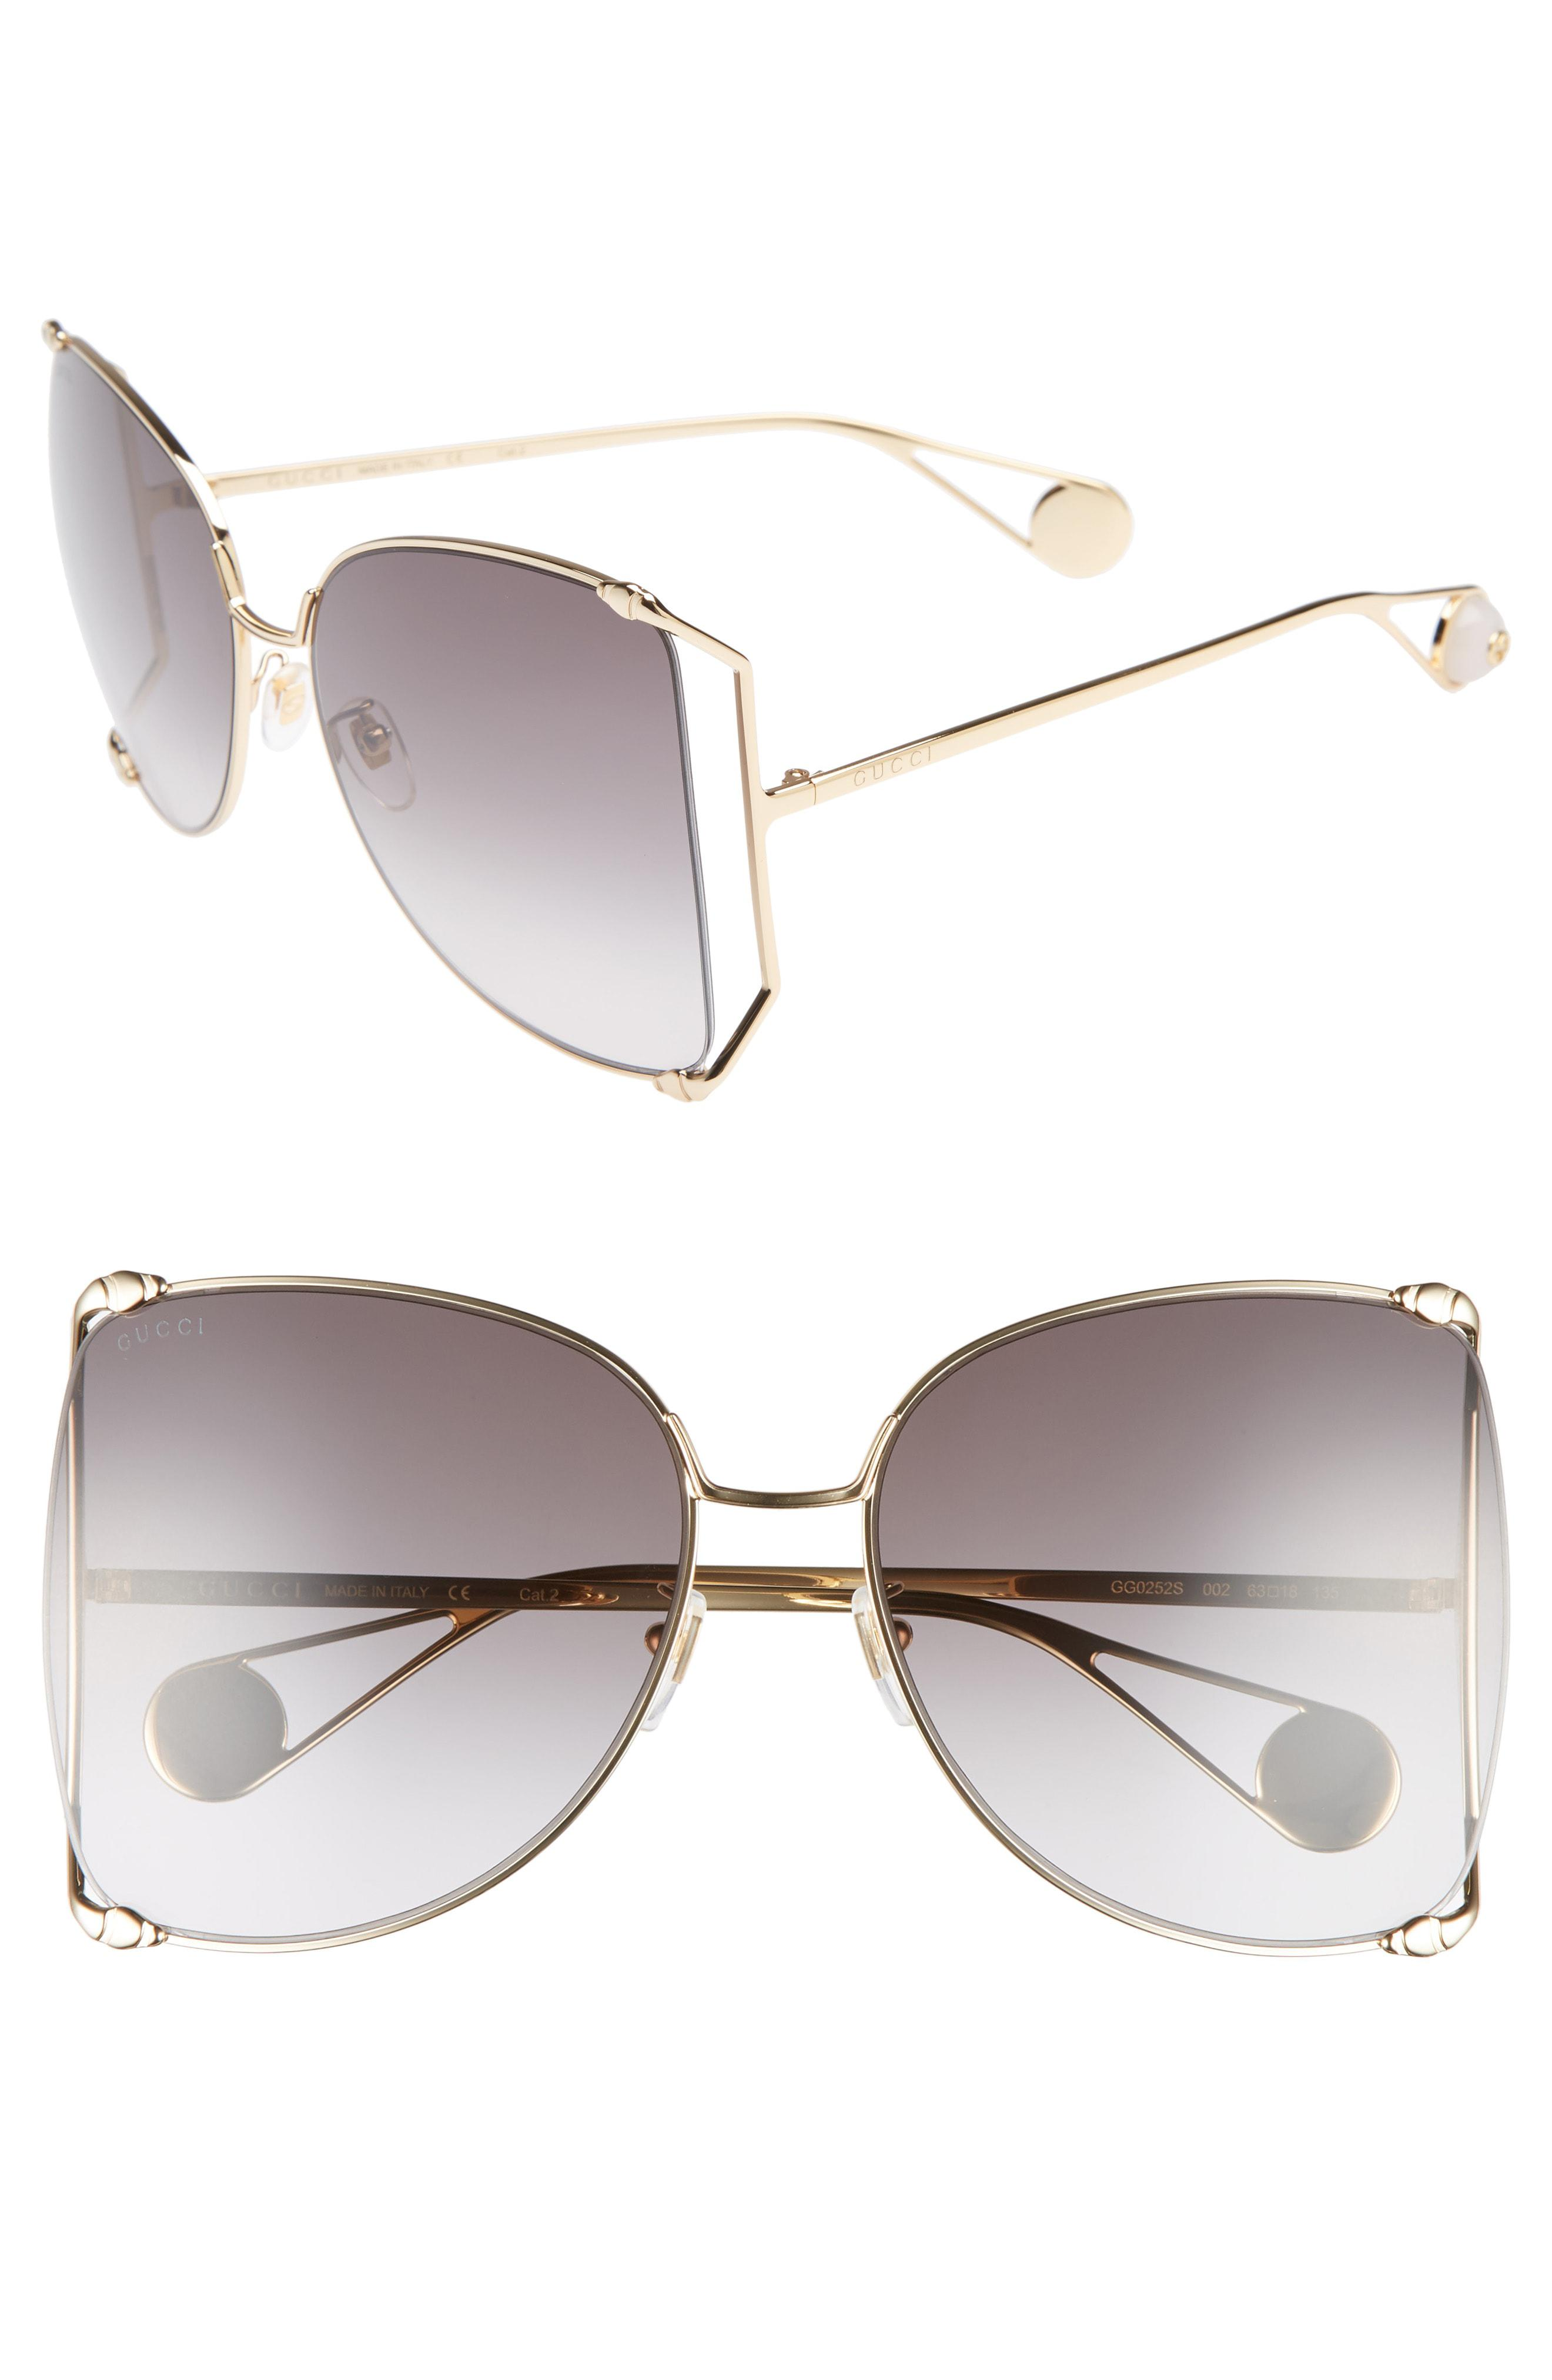 0db0118672 Gucci. Women s 63mm Gradient Oversize Butterfly Sunglasses -